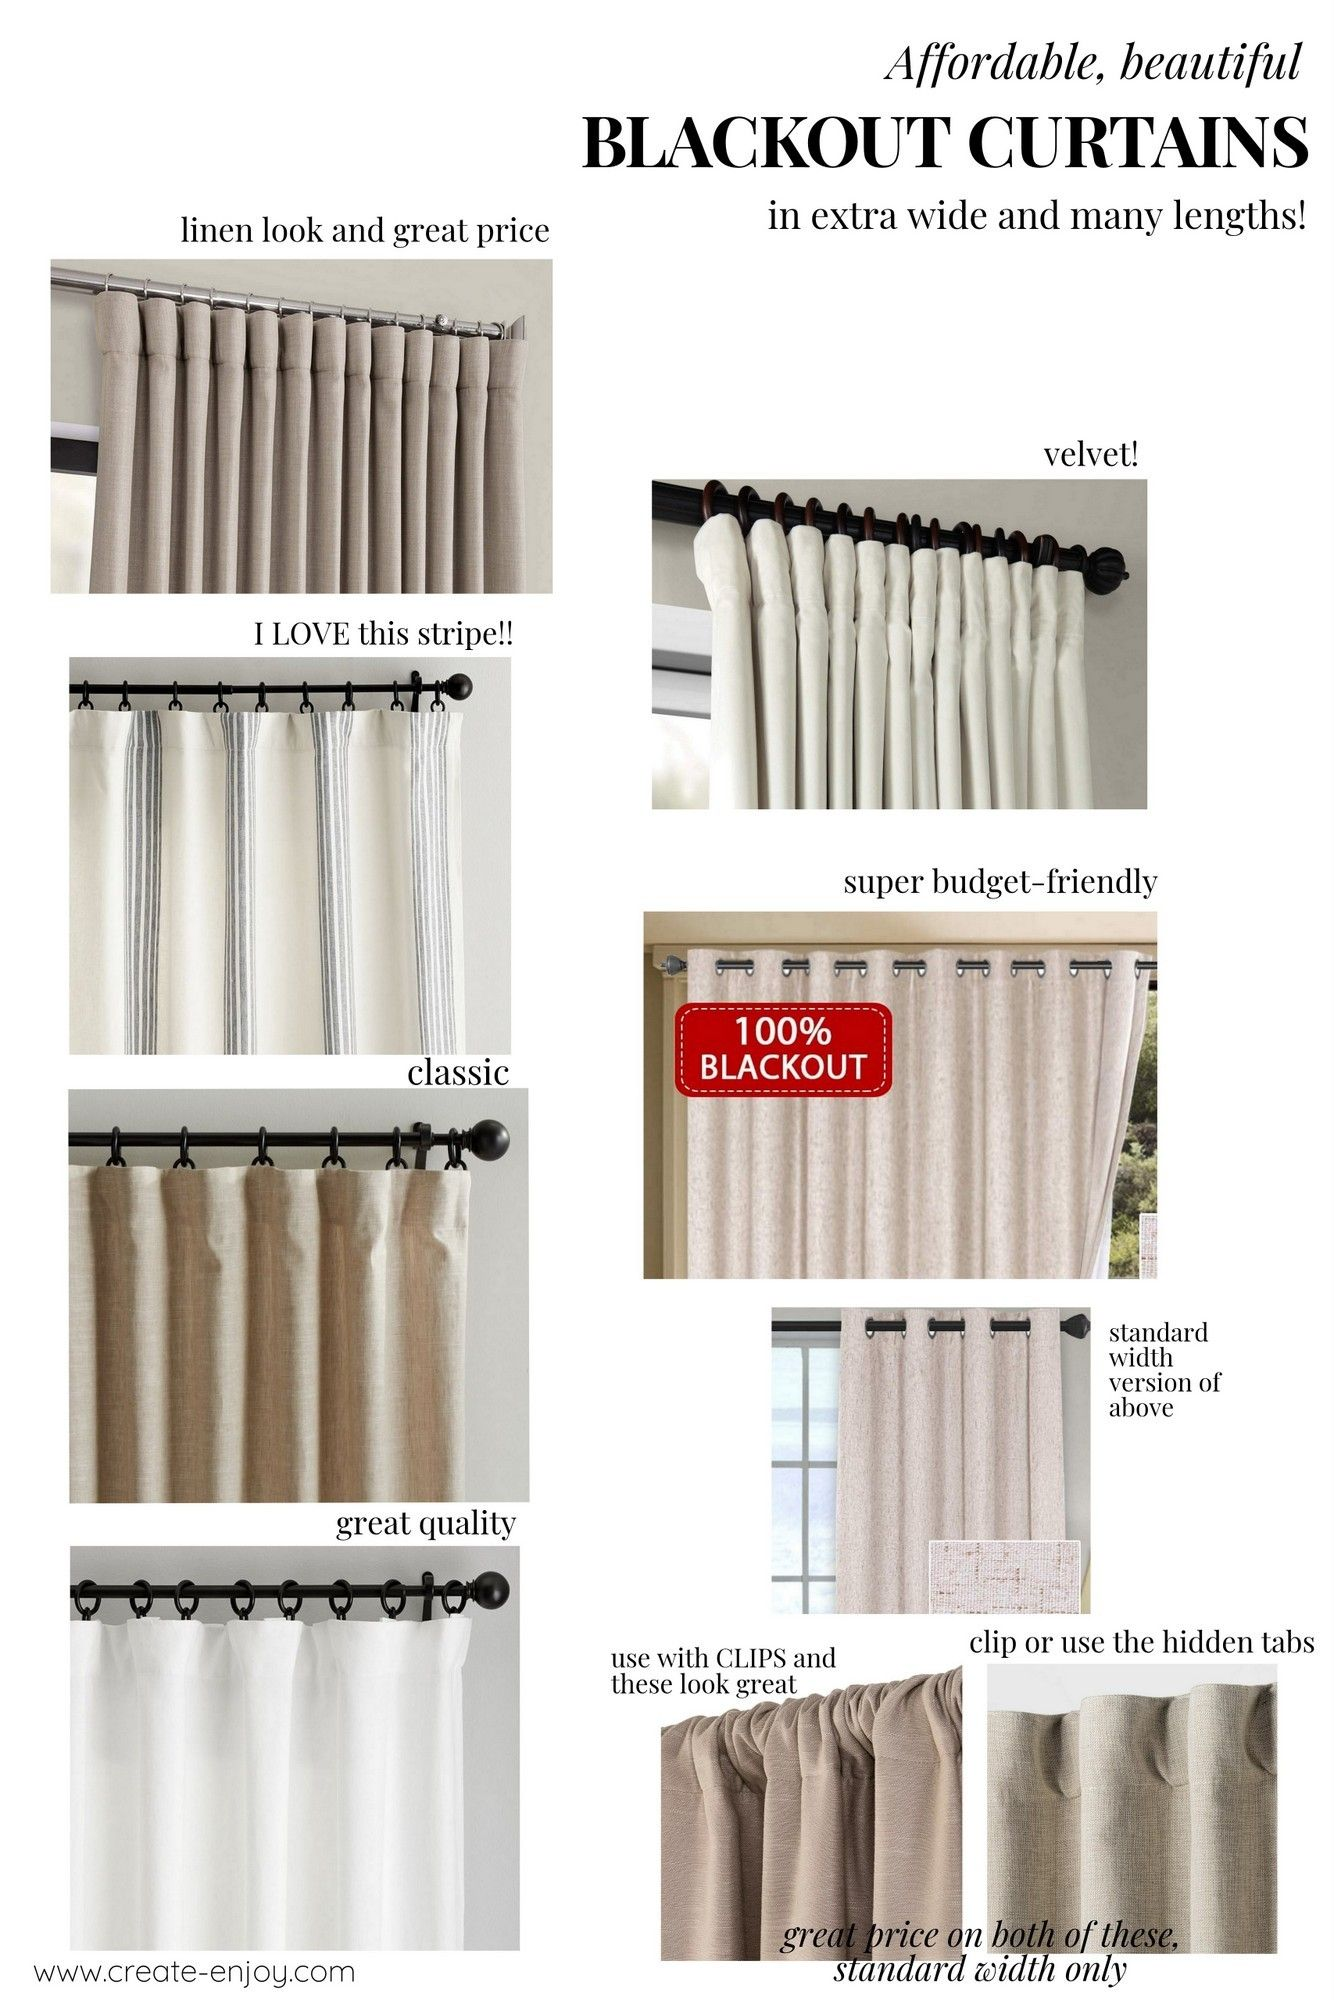 Affordable Blackout Curtains Tips Round Up And Best Sources Create Enjoy In 2020 Blackout Curtains Curtains Wide Curtains